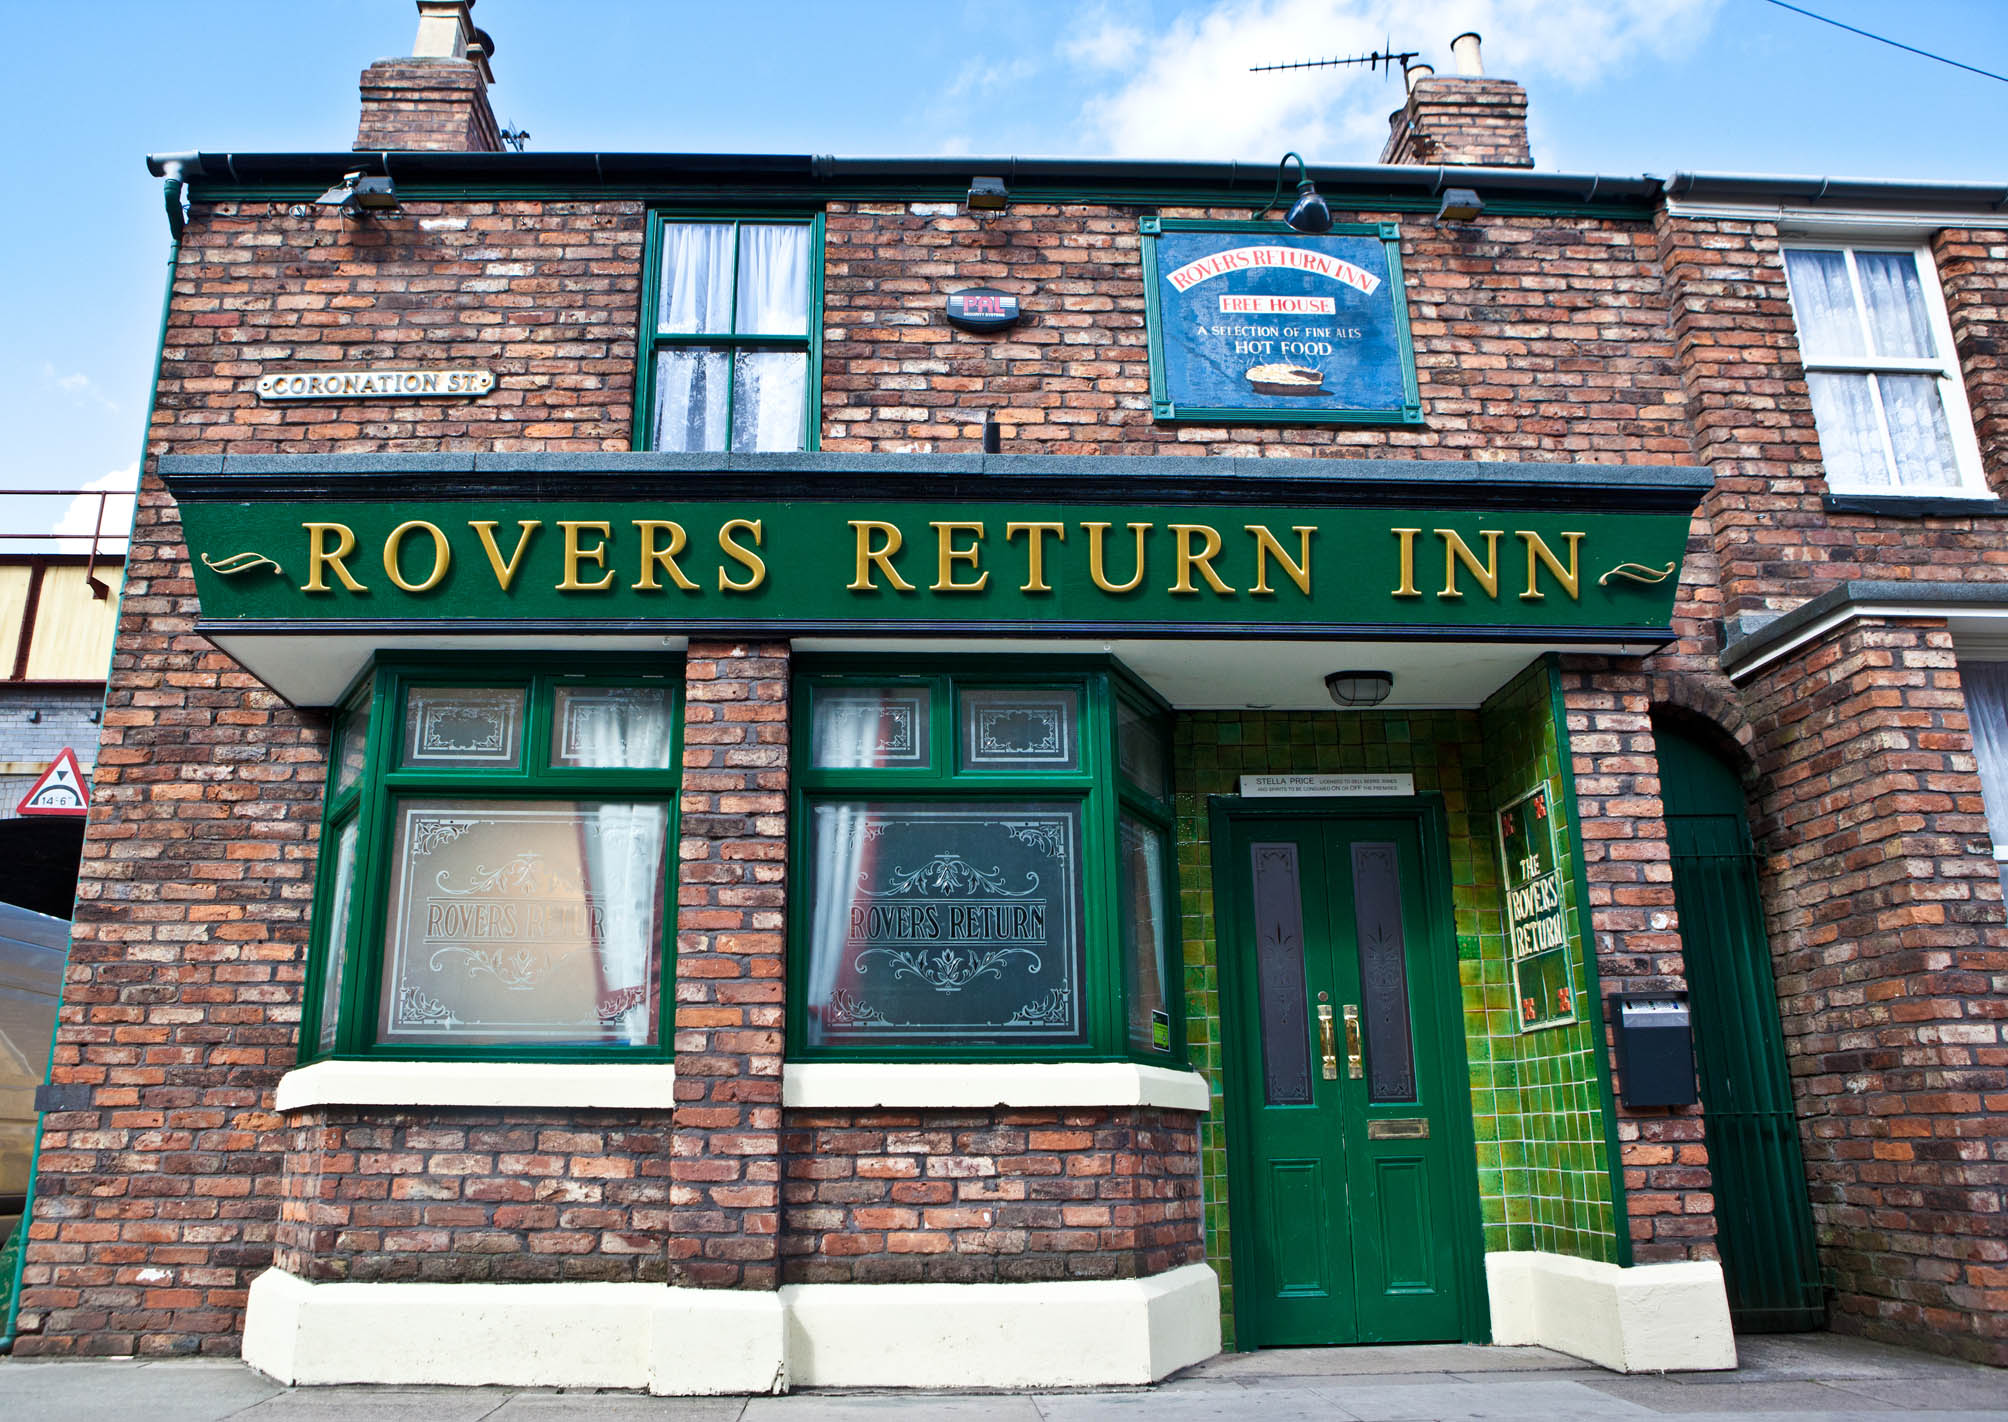 DOUBLE TRAGEDY in Coronation Street as TWO families find their lives torn apart